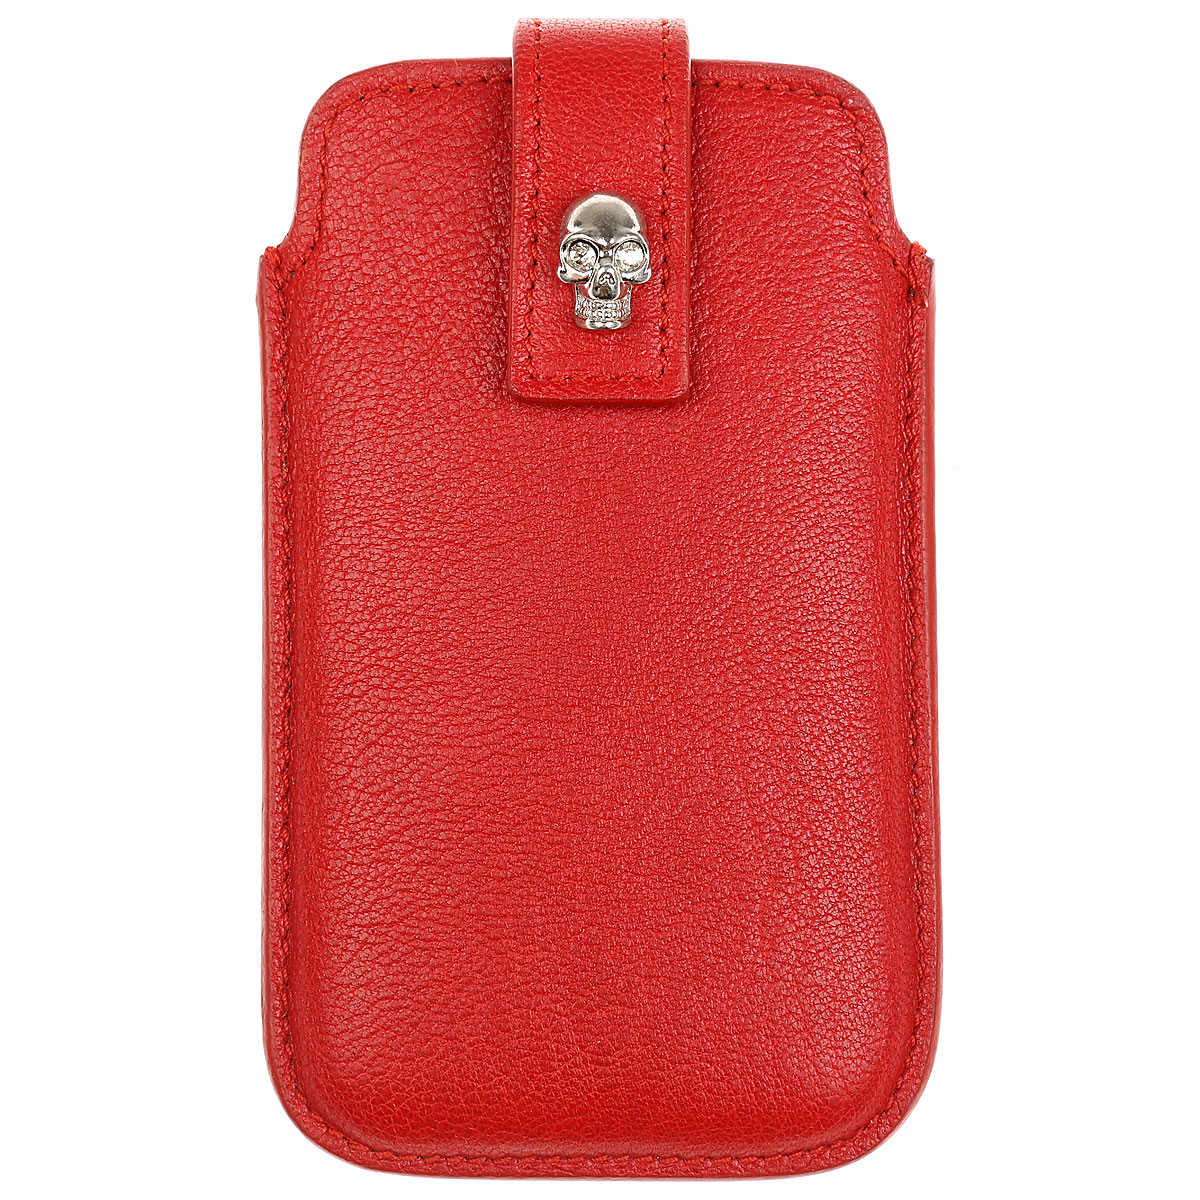 Alexander McQueen Womens Wallets On Sale in Outlet Red SE - GOOFASH